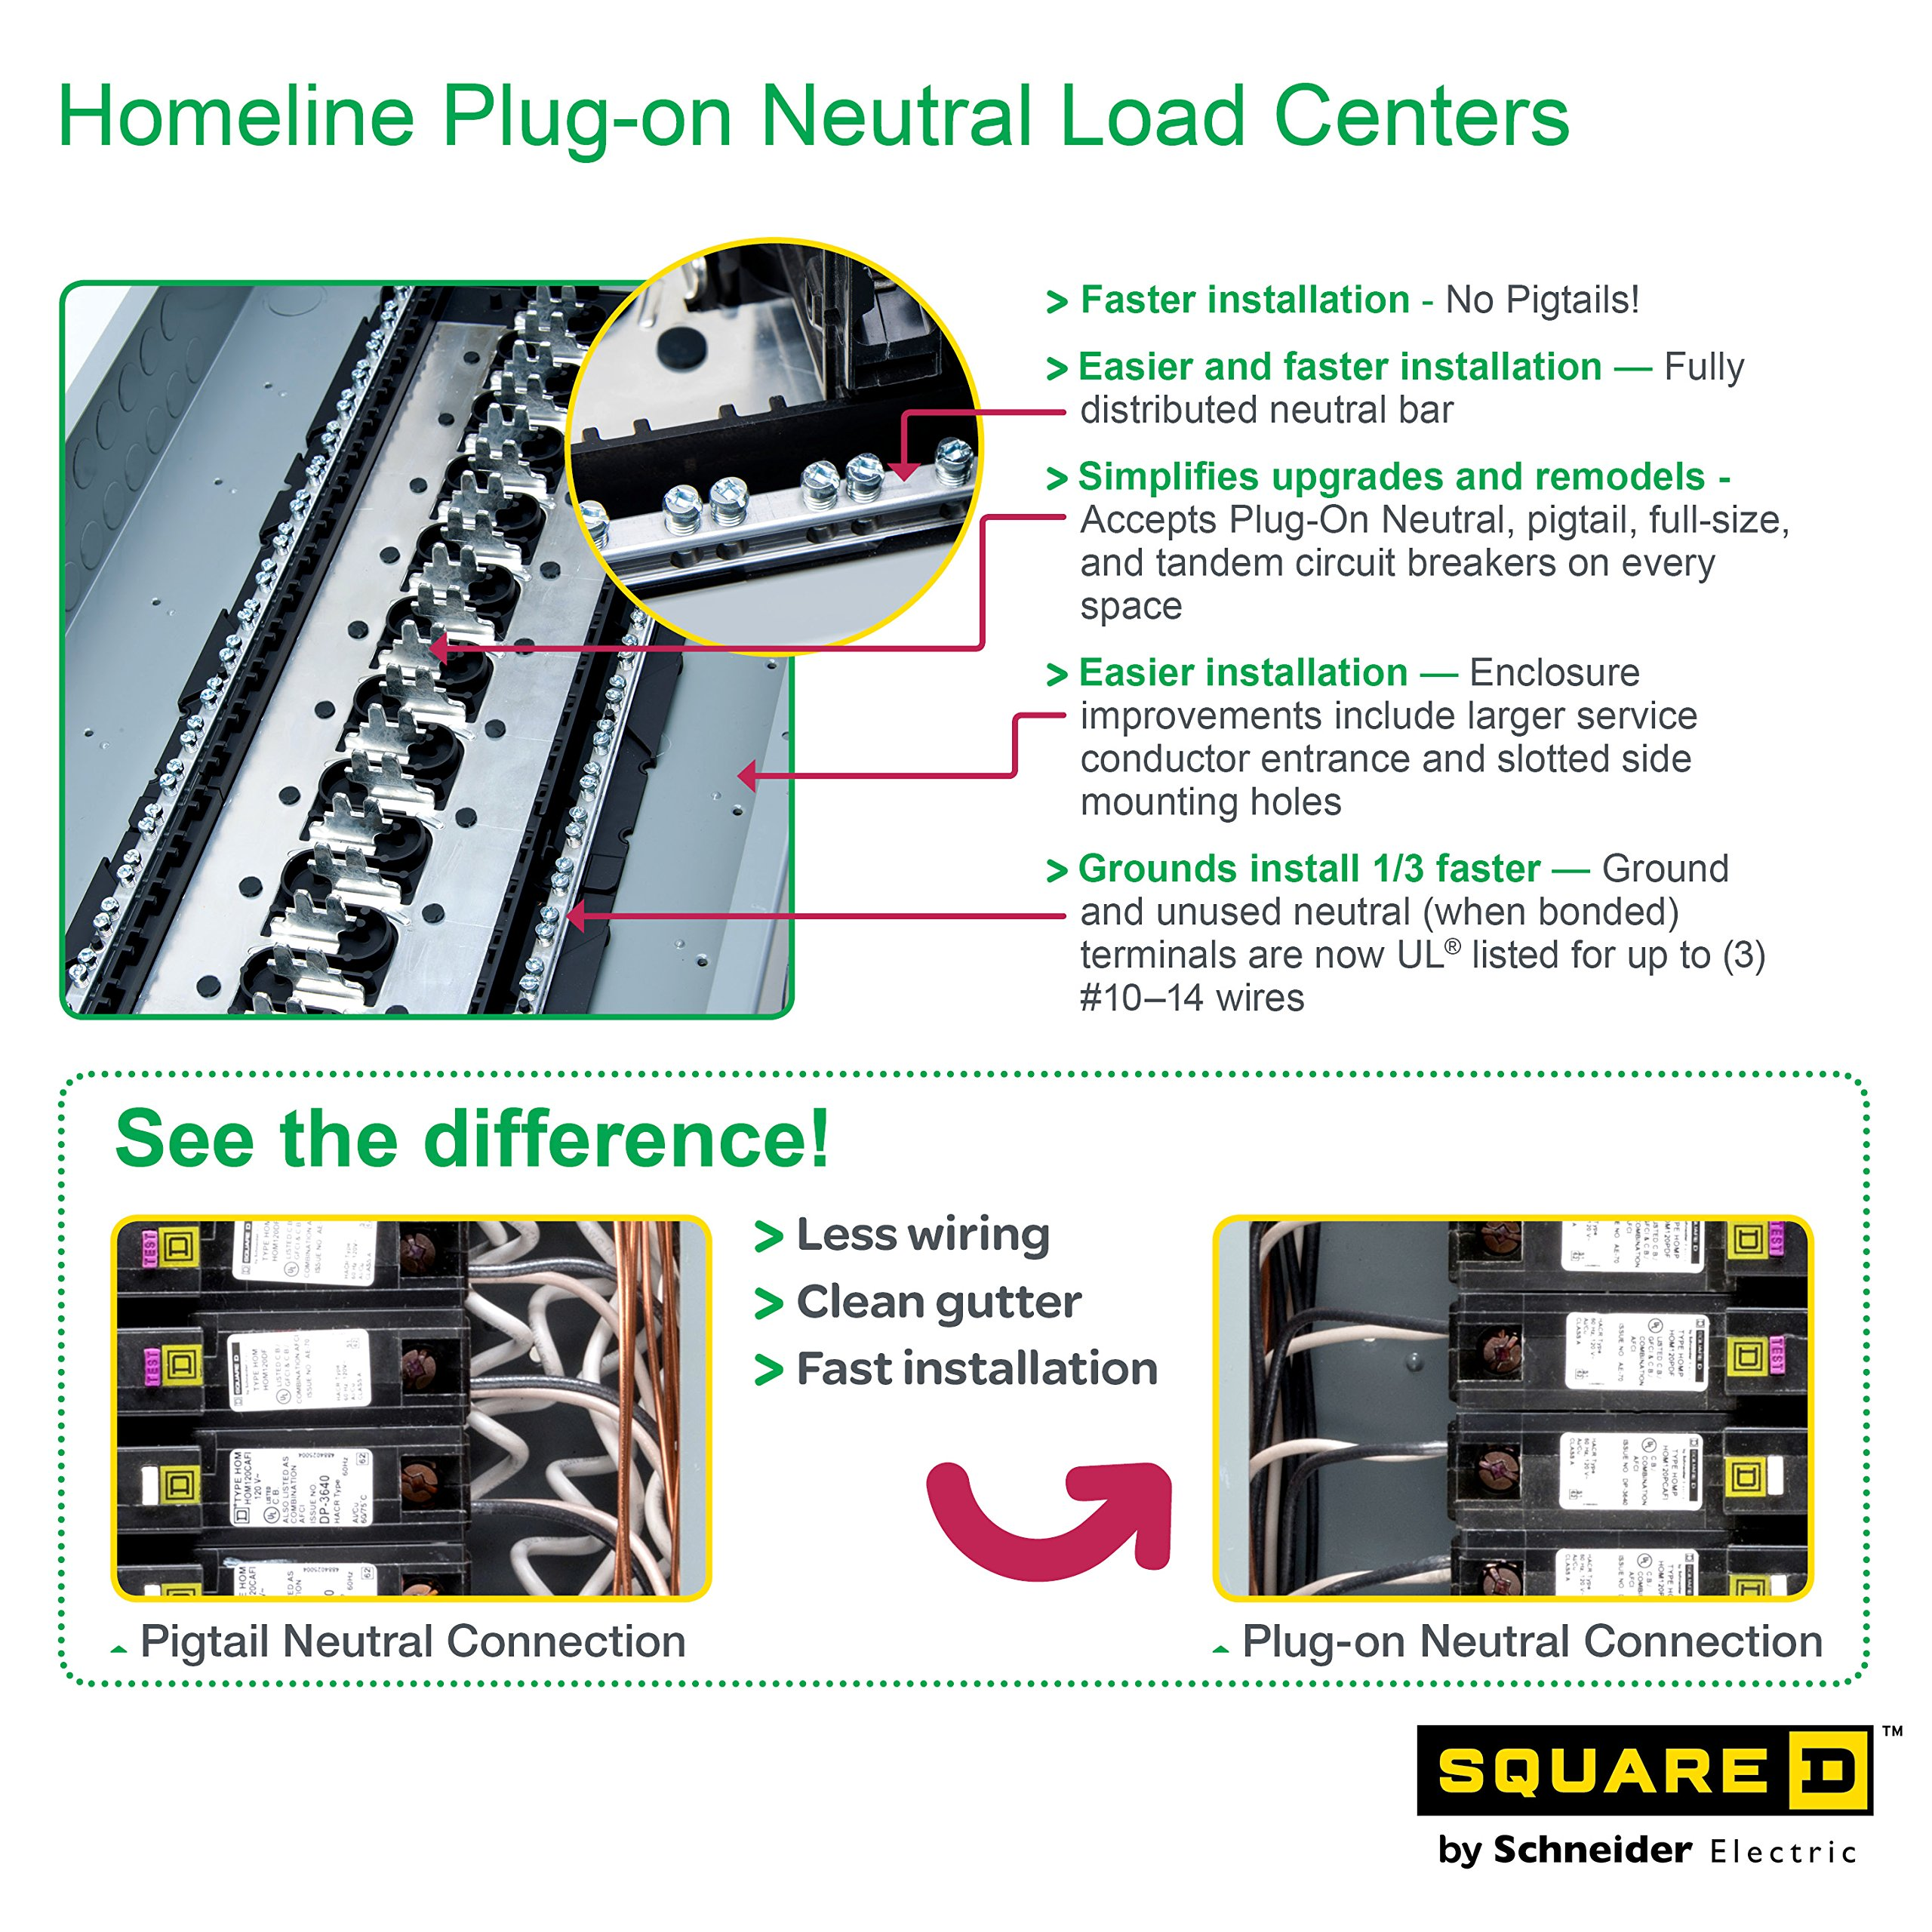 square d by schneider electric hom2448m100pcvp homeline 100 amp 24 square d circuit breakers 100 amp load center square d by schneider electric hom2448m100pcvp homeline 100 amp 24 space 48 circuit indoor main breaker load center with cover value pack (plug on neutral